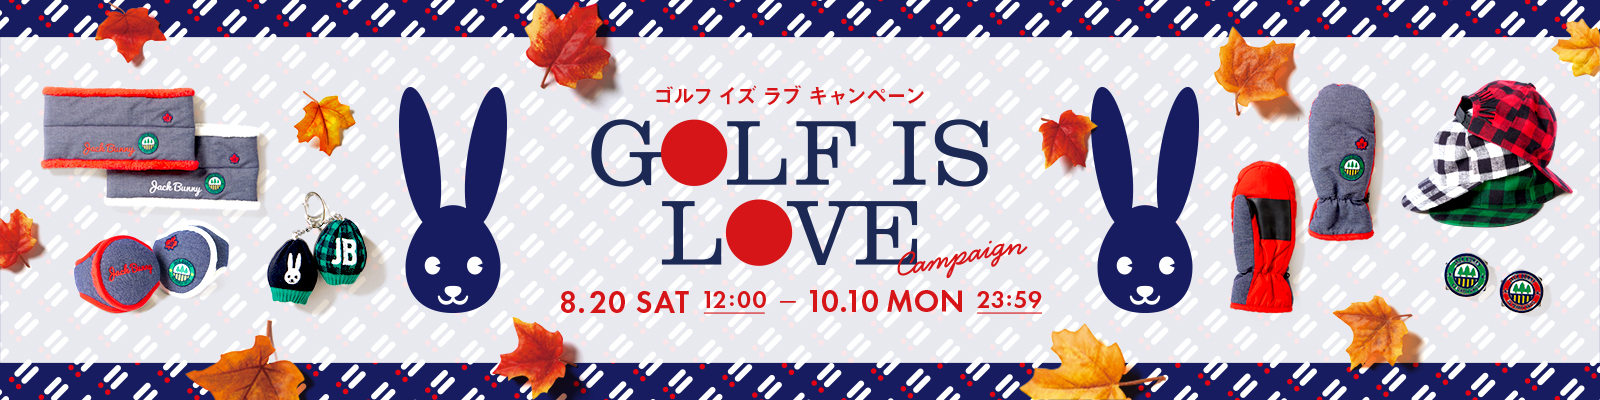 GOLF IS LOVE CAMPAIGN